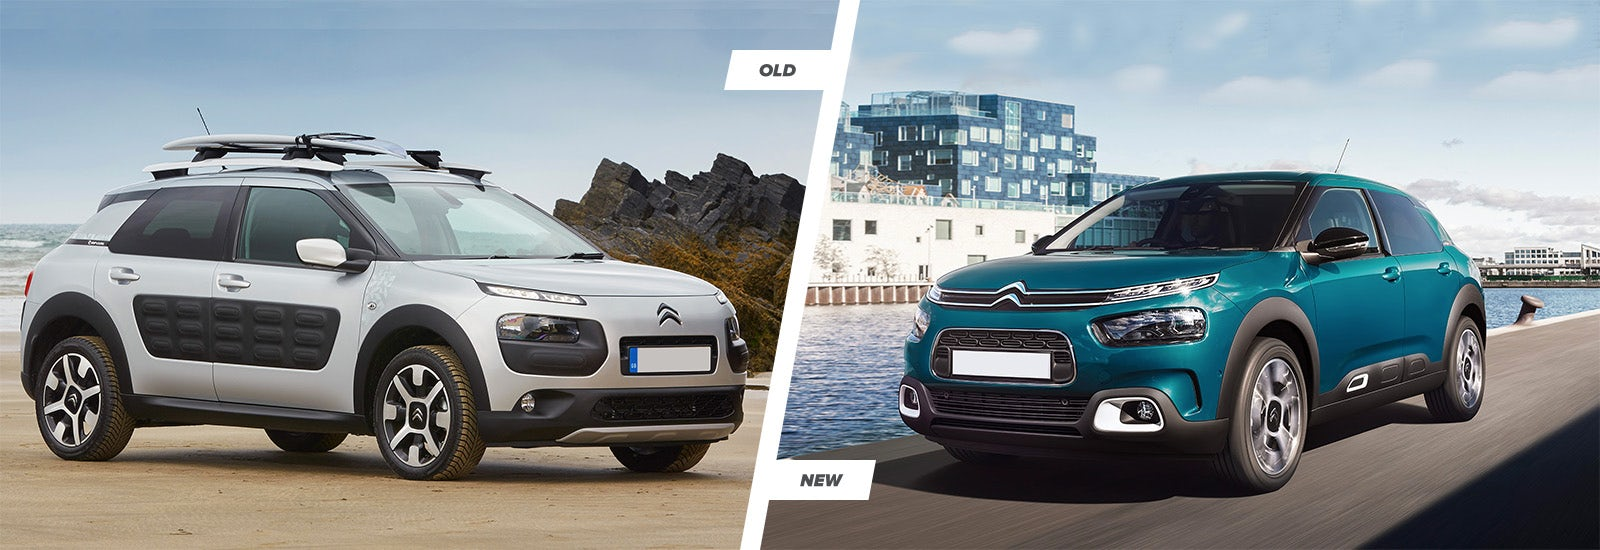 2018 citroen c4 cactus price specs and release date carwow. Black Bedroom Furniture Sets. Home Design Ideas